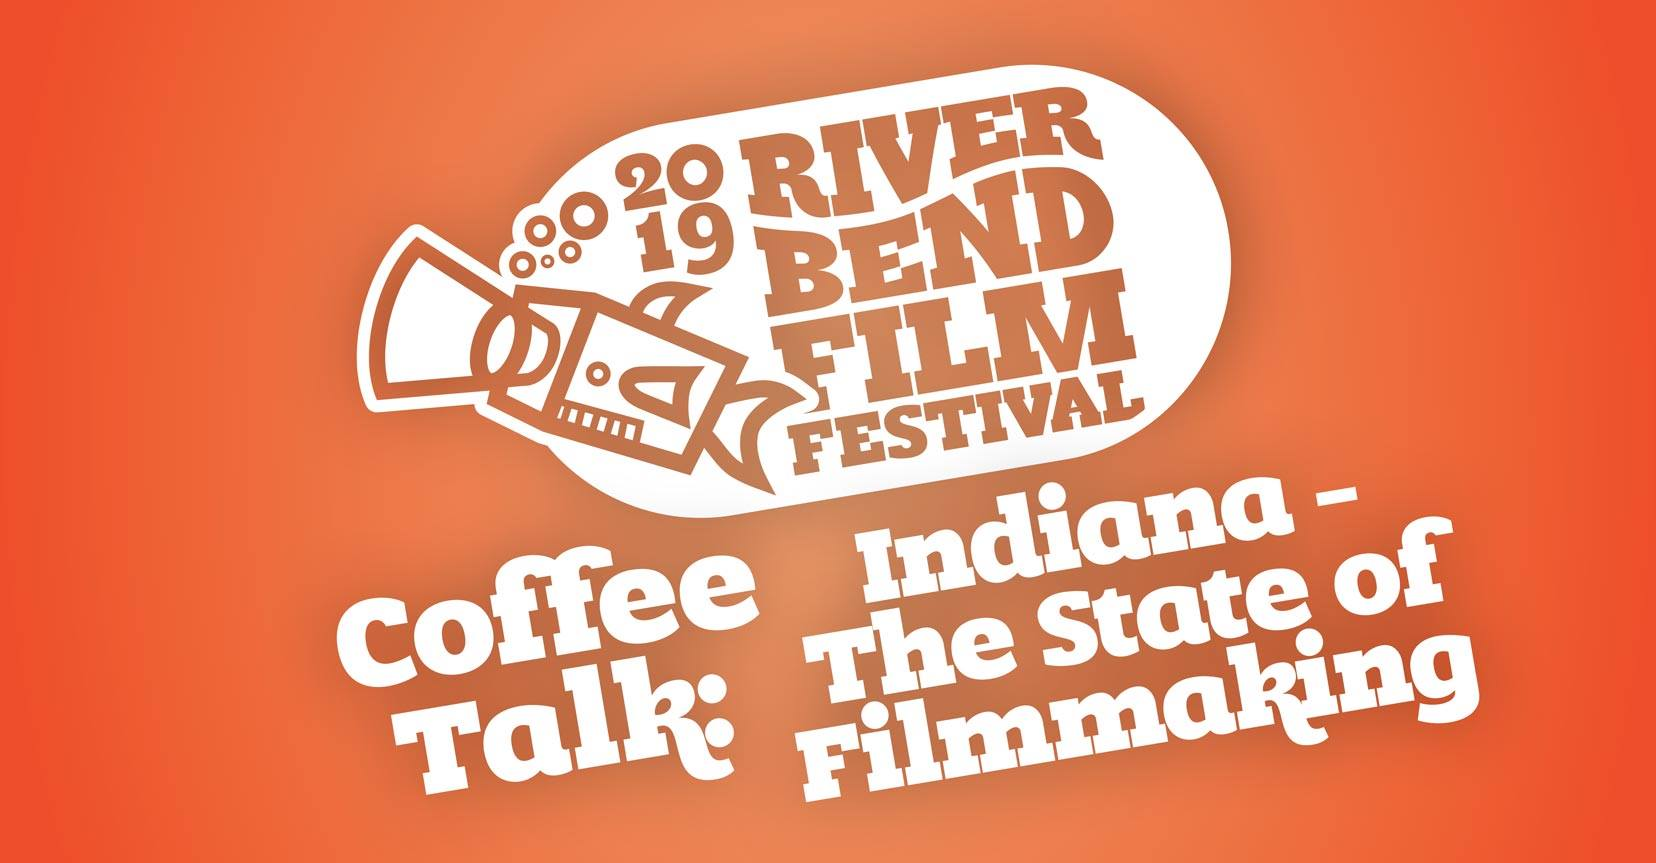 Coffee Talk: Indiana - The State of Filmmaking